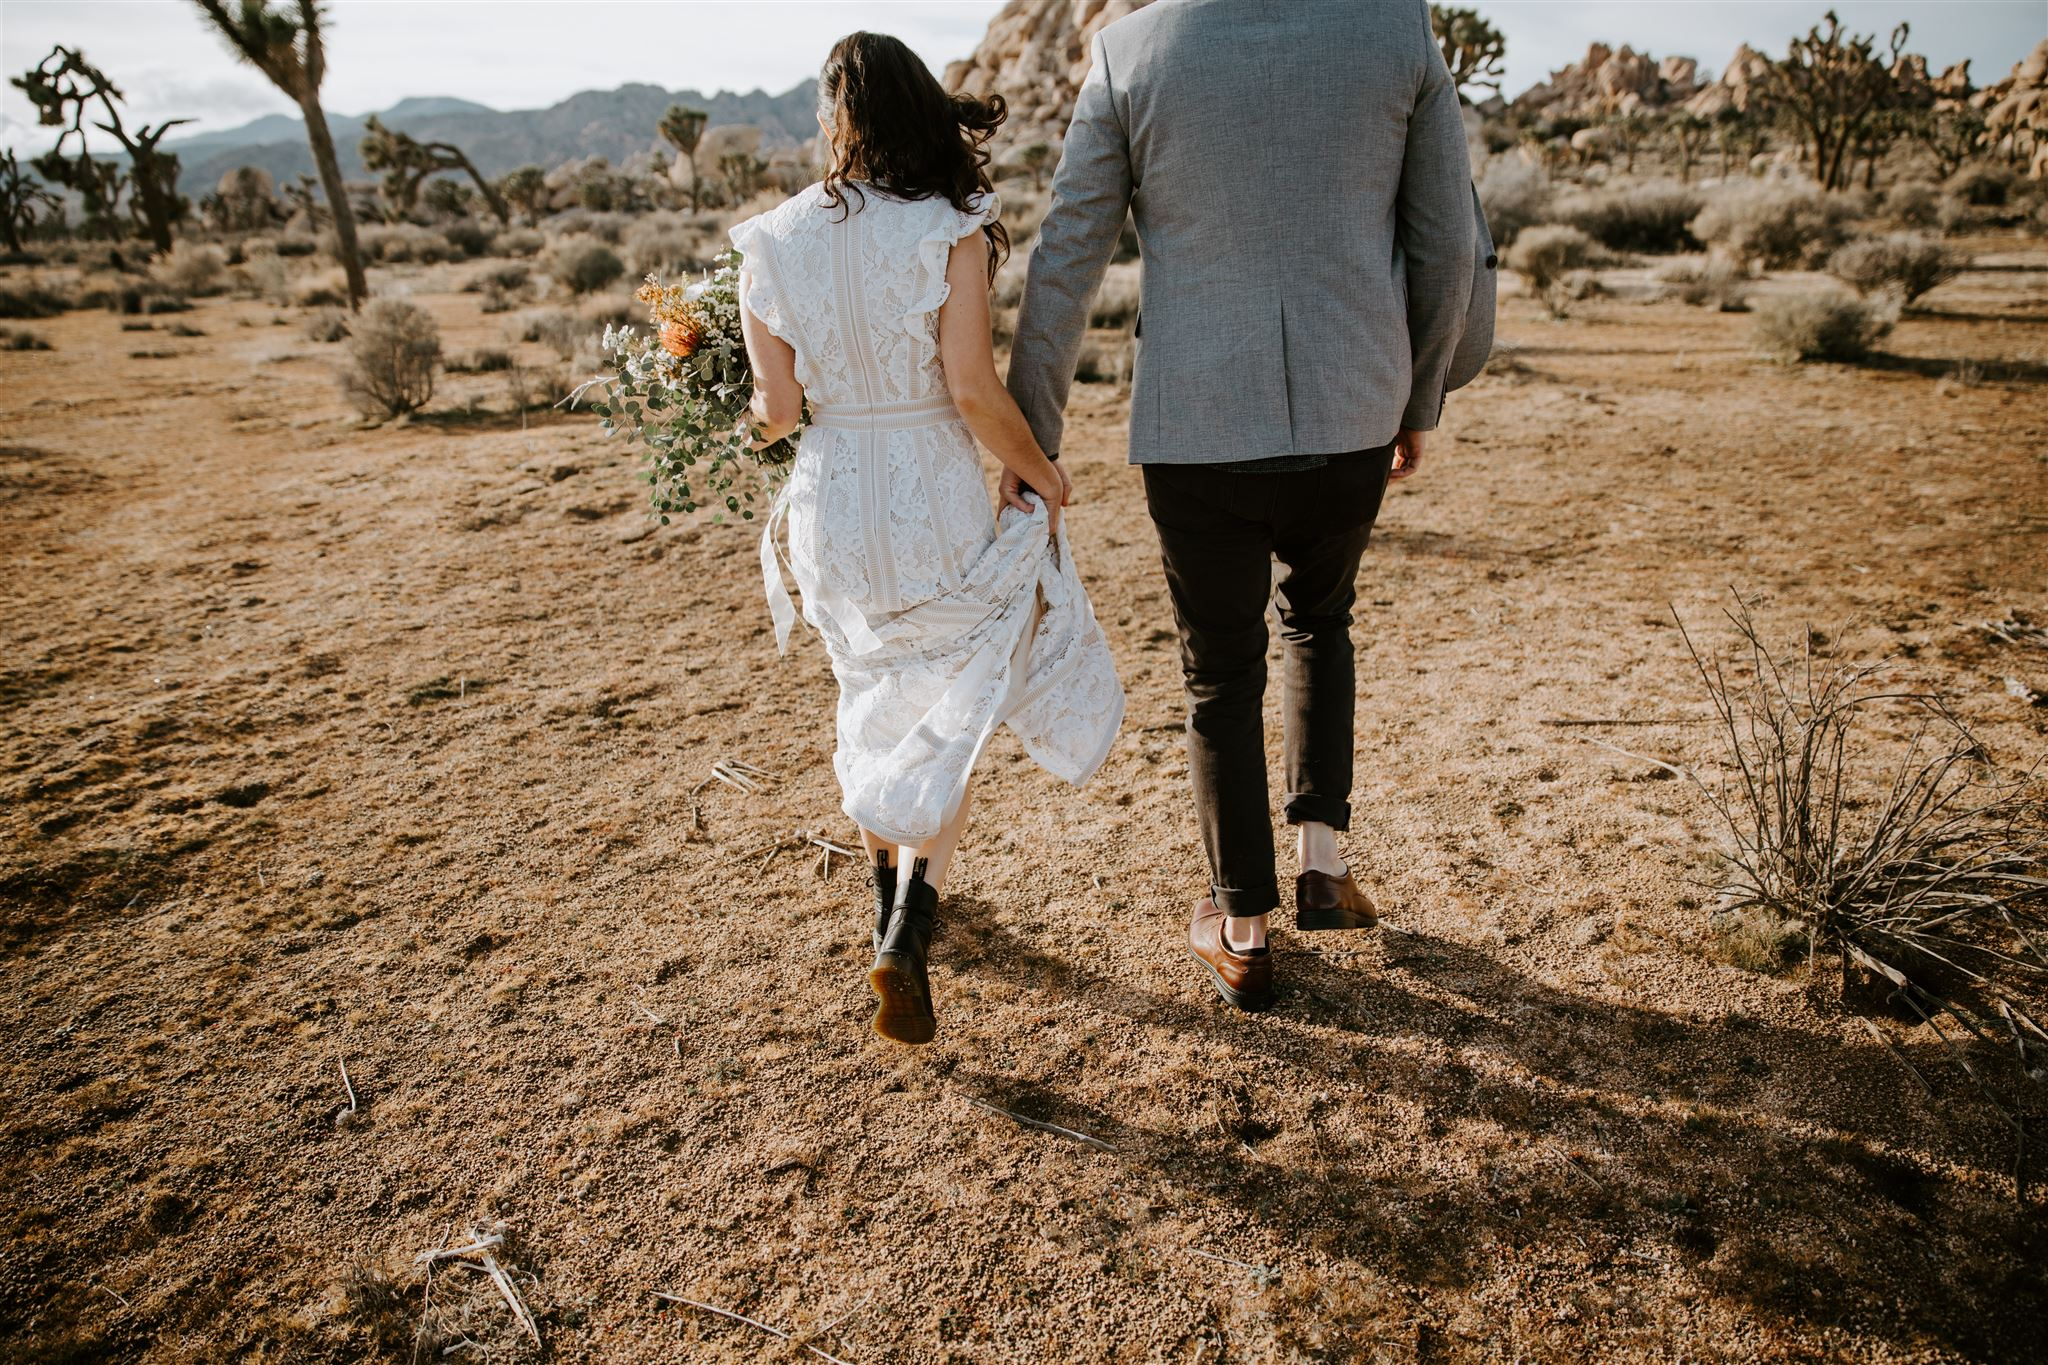 Joshua Tree CA Elopement Wedding  Photographer May Iosotaluno 28.jpg